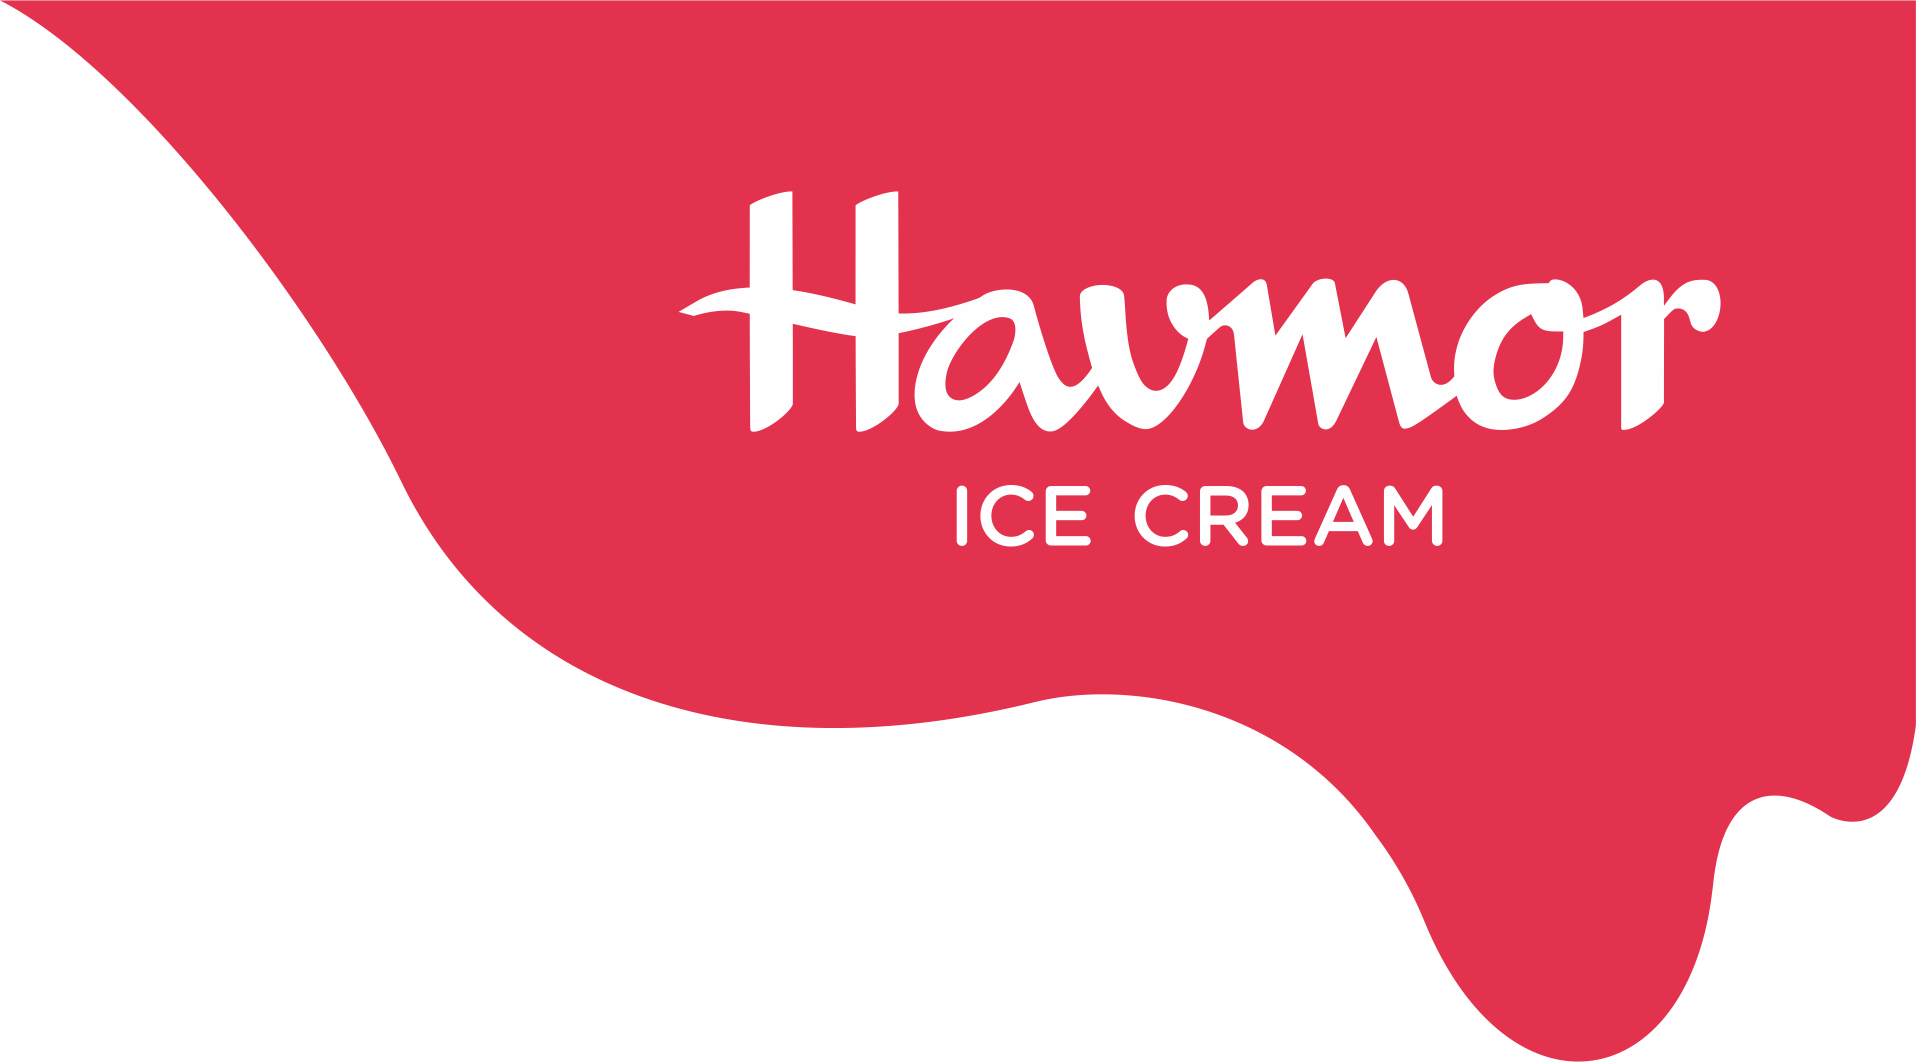 Happy Swoo: Havmor Ice Cream Partners with Dunzo for Delivery Services